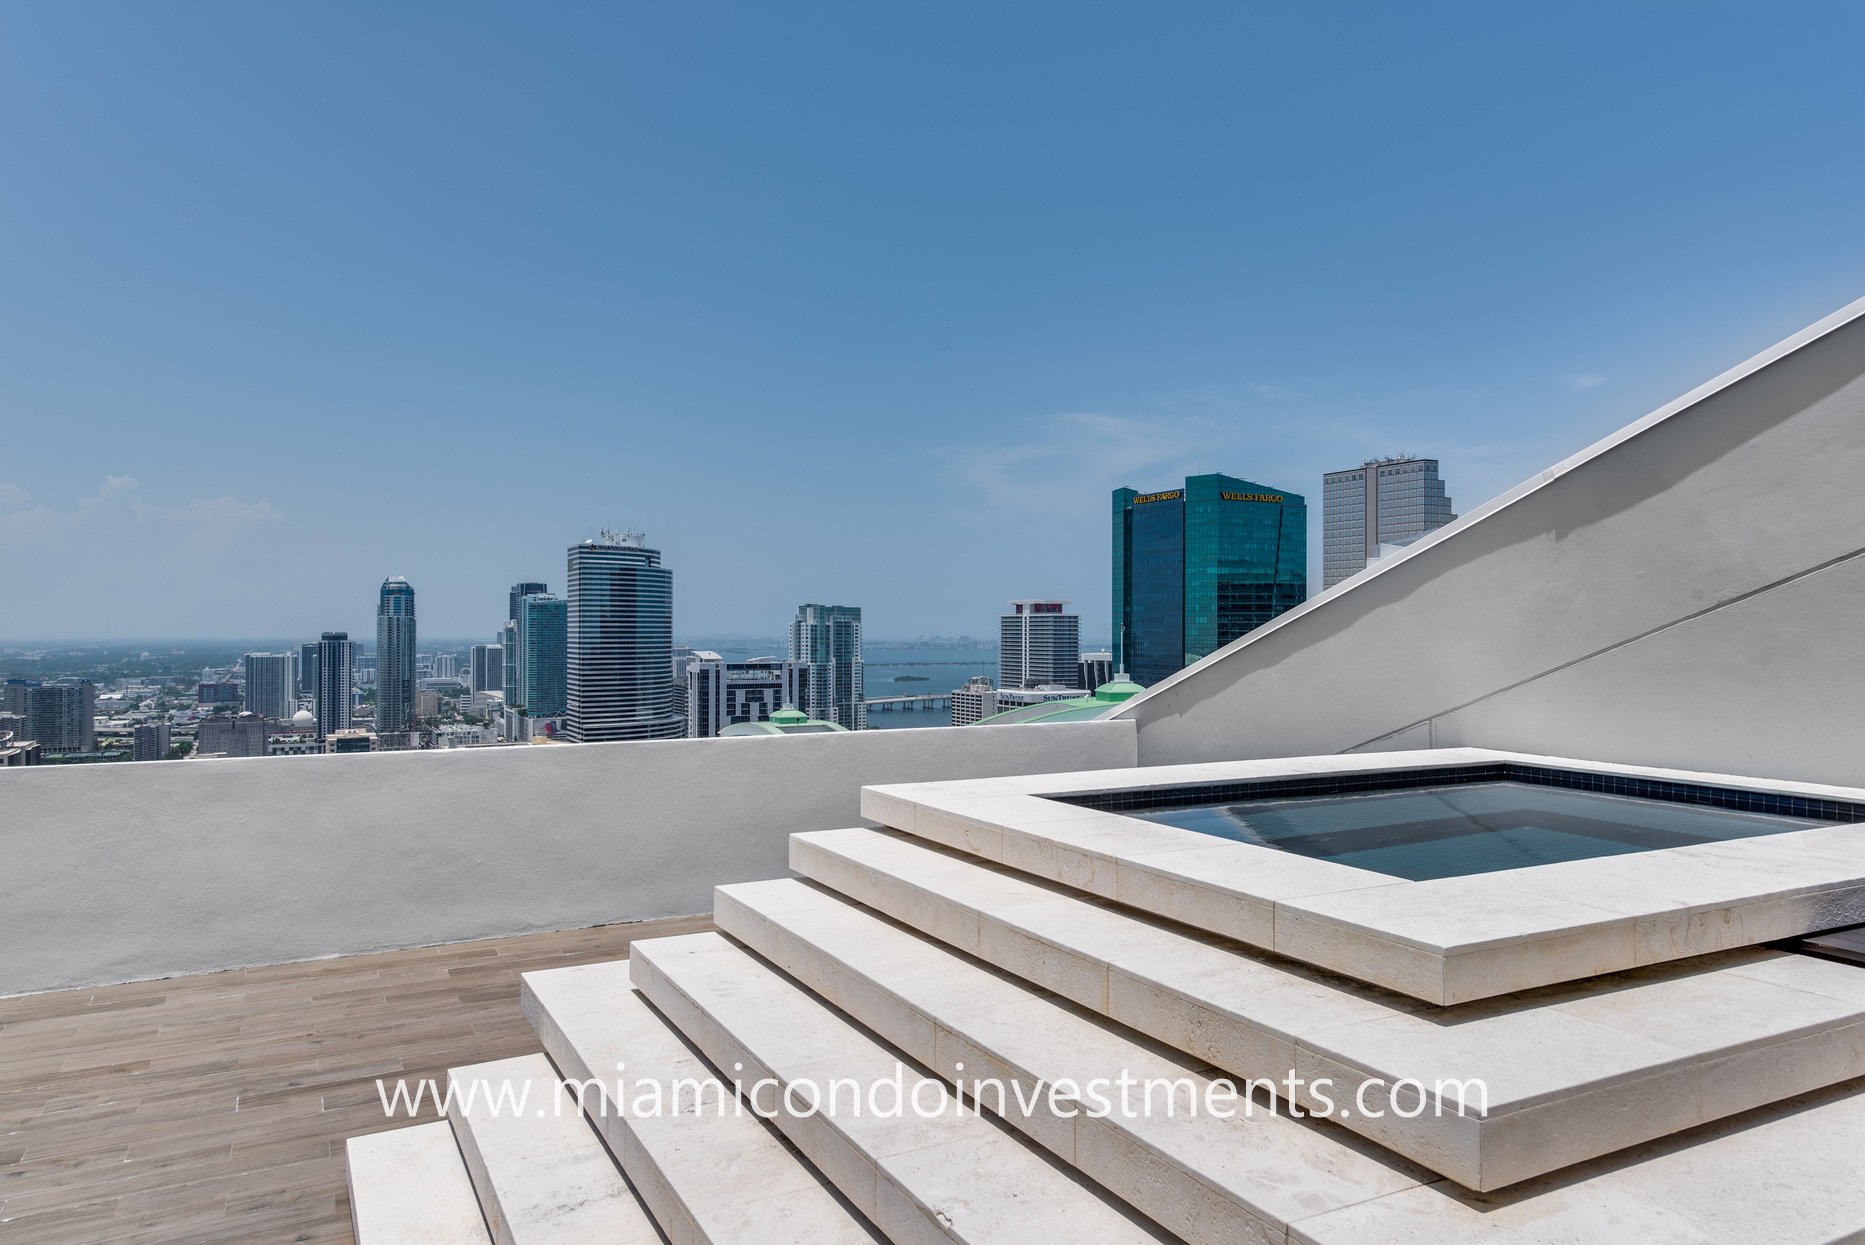 downtown miami views from rooftop Jacuzzi